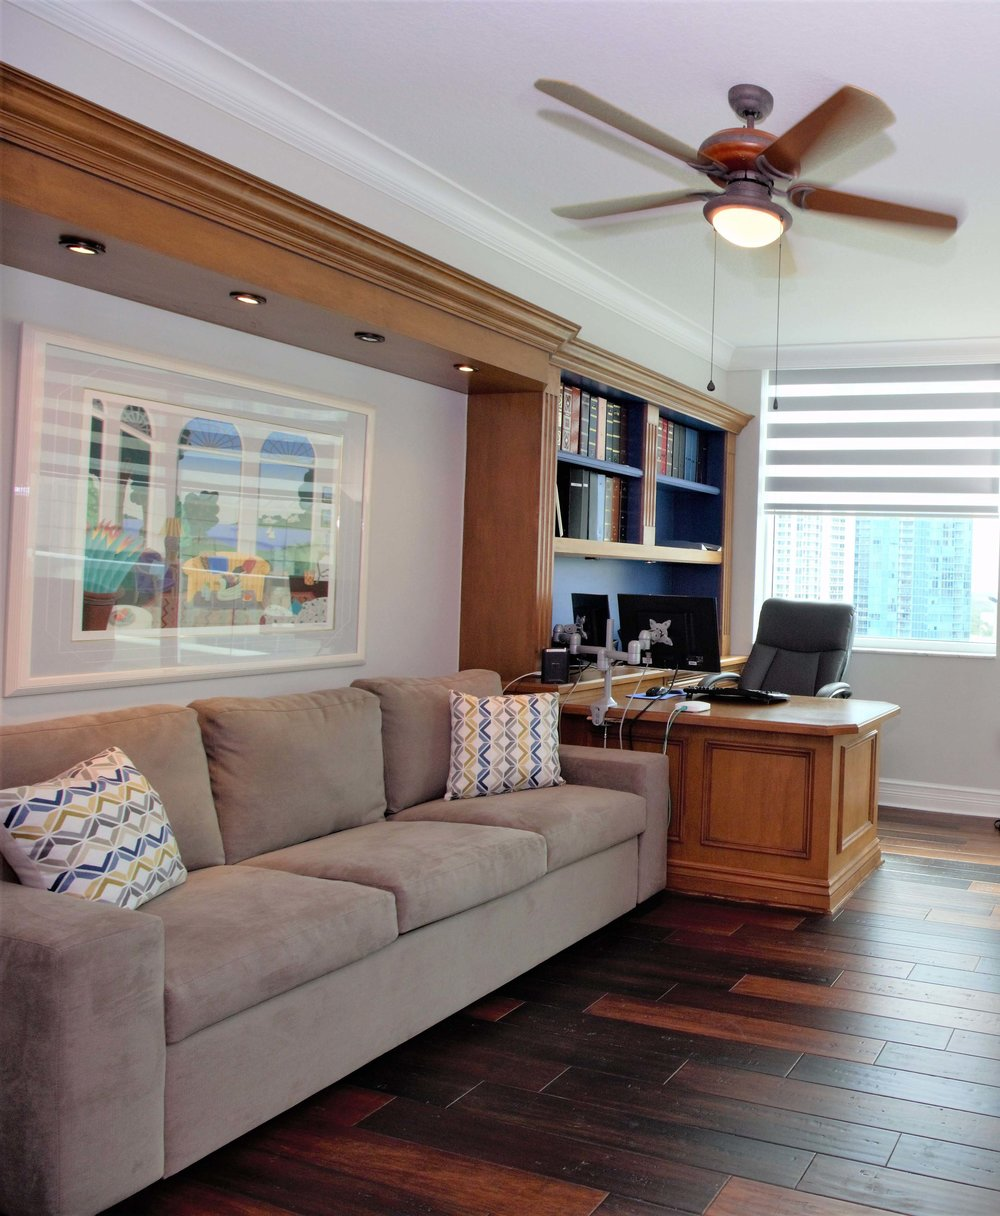 Our experience with Sheffield was great. It was nice to find a construction and maintenance company that we can trust their prices and professionalism! - - Resident of Fort Lauderdale